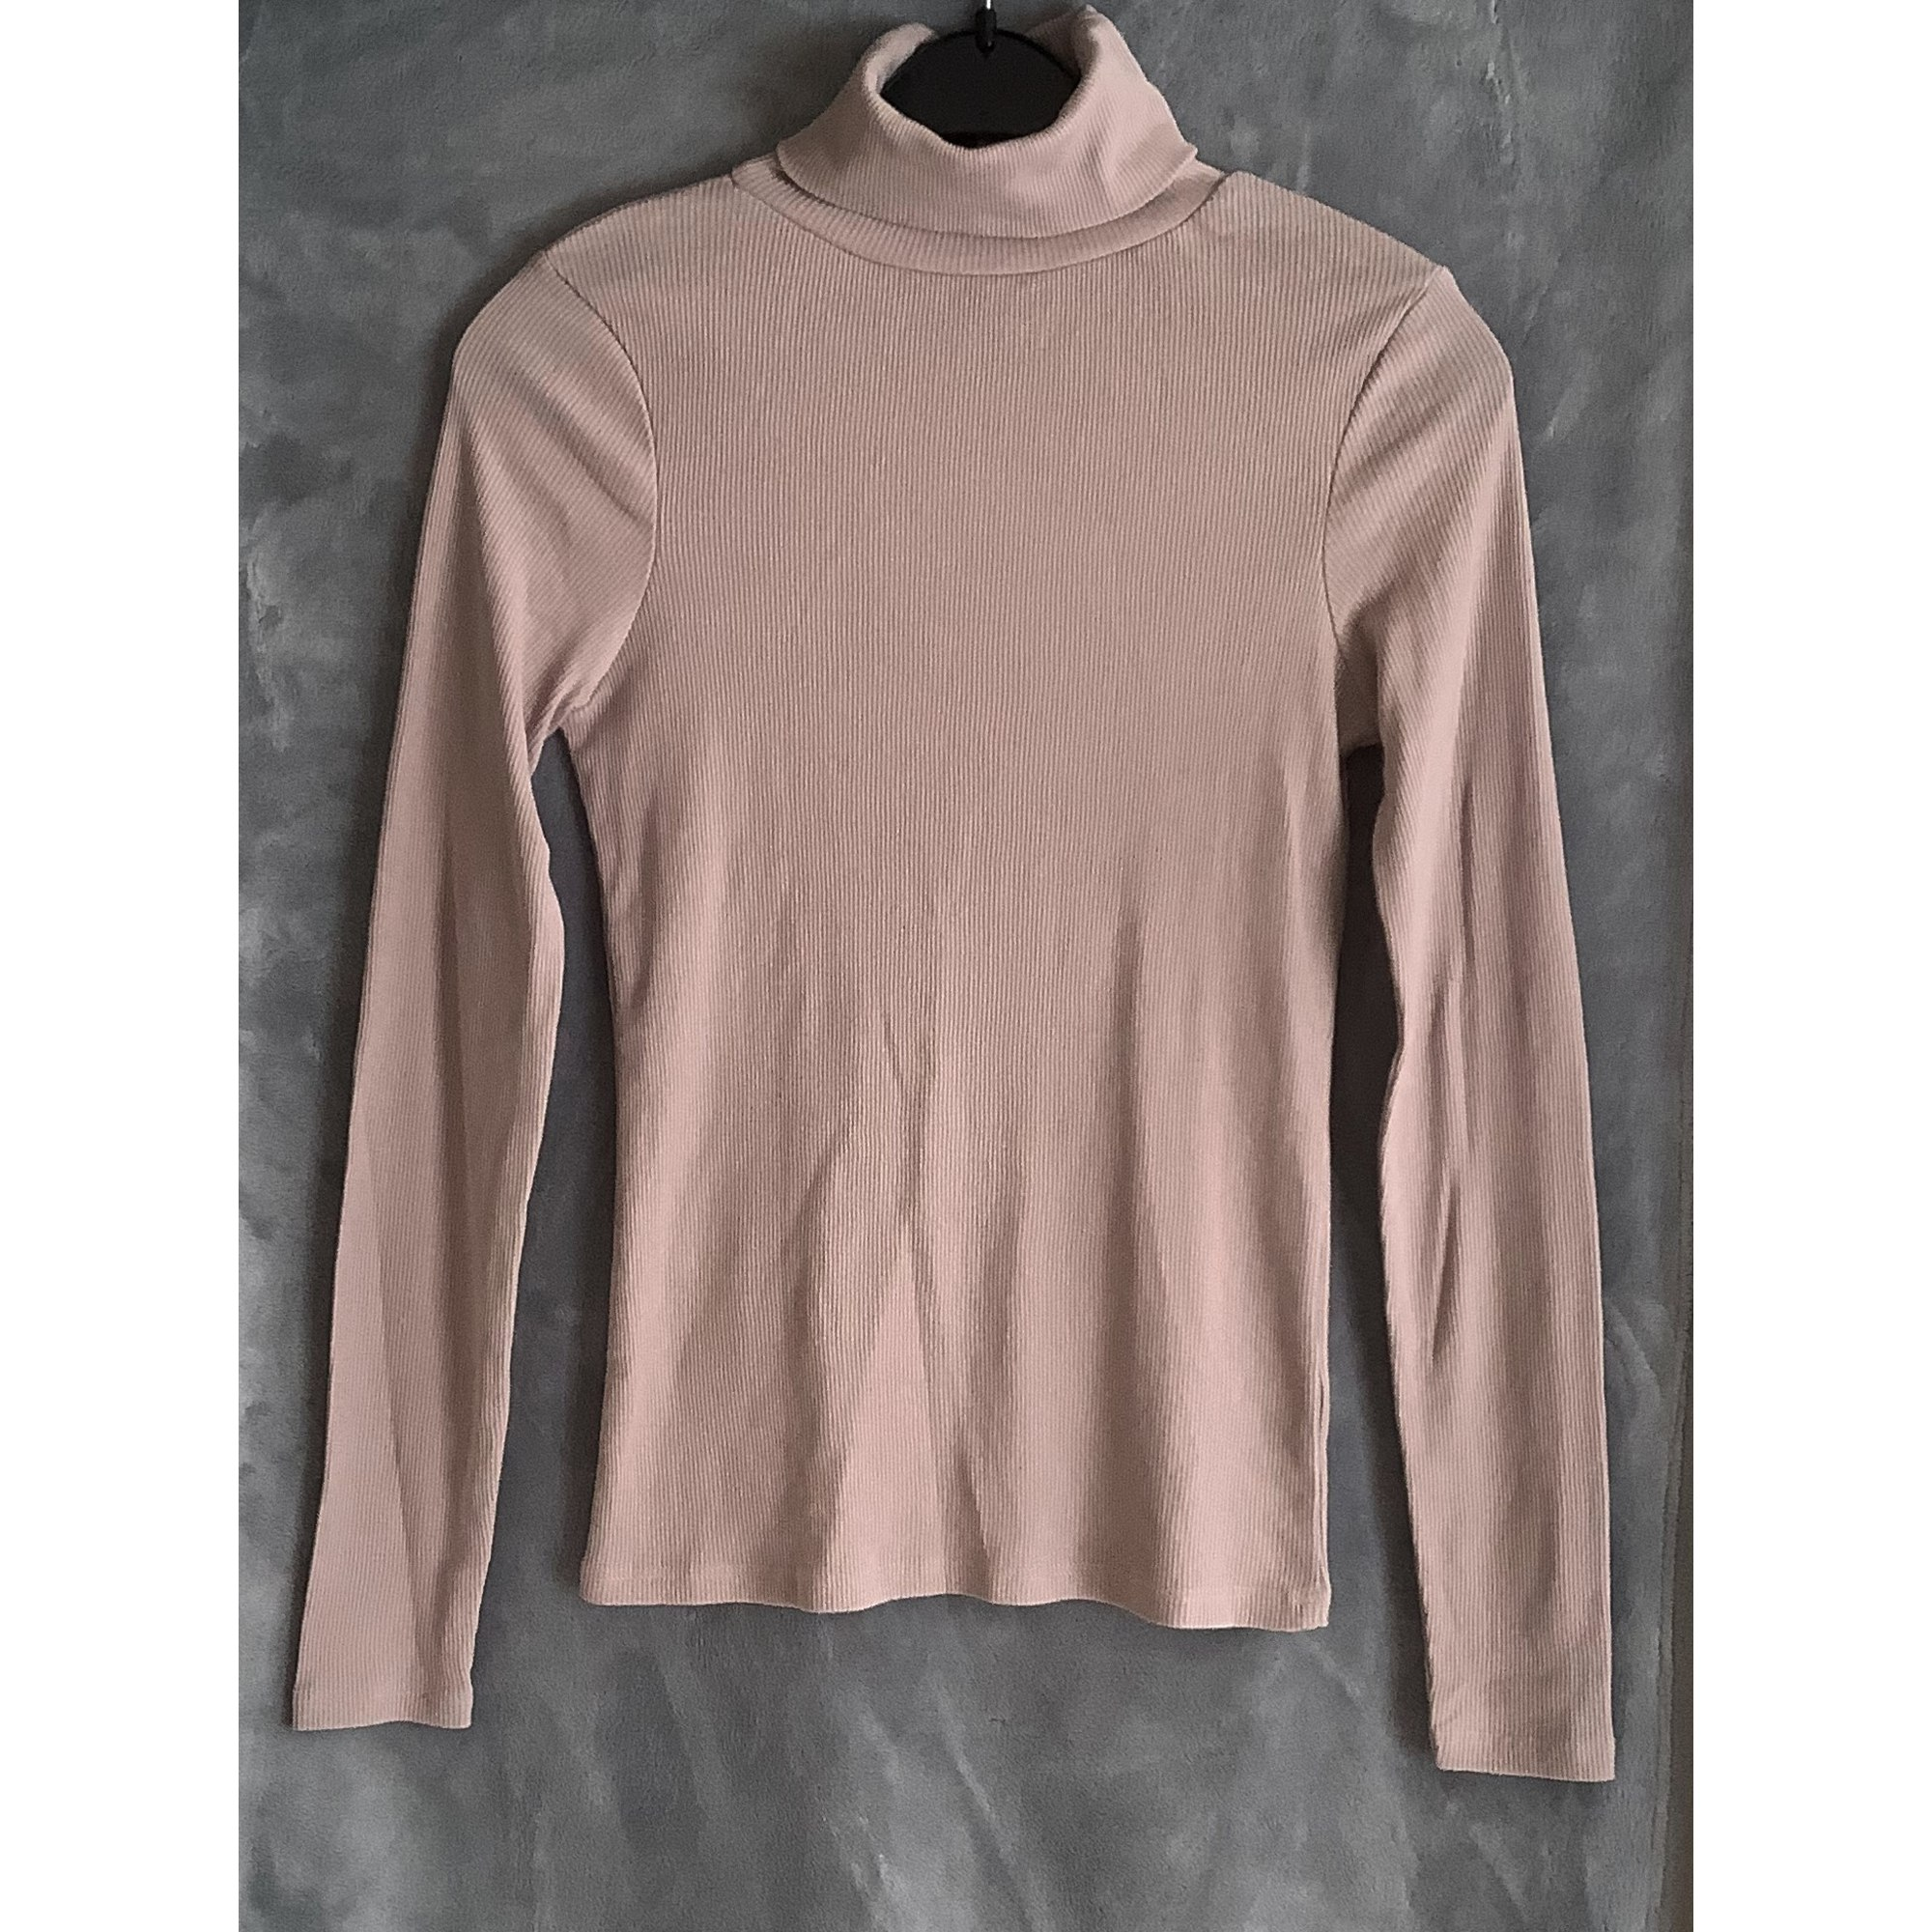 Pull NEW LOOK Beige, camel